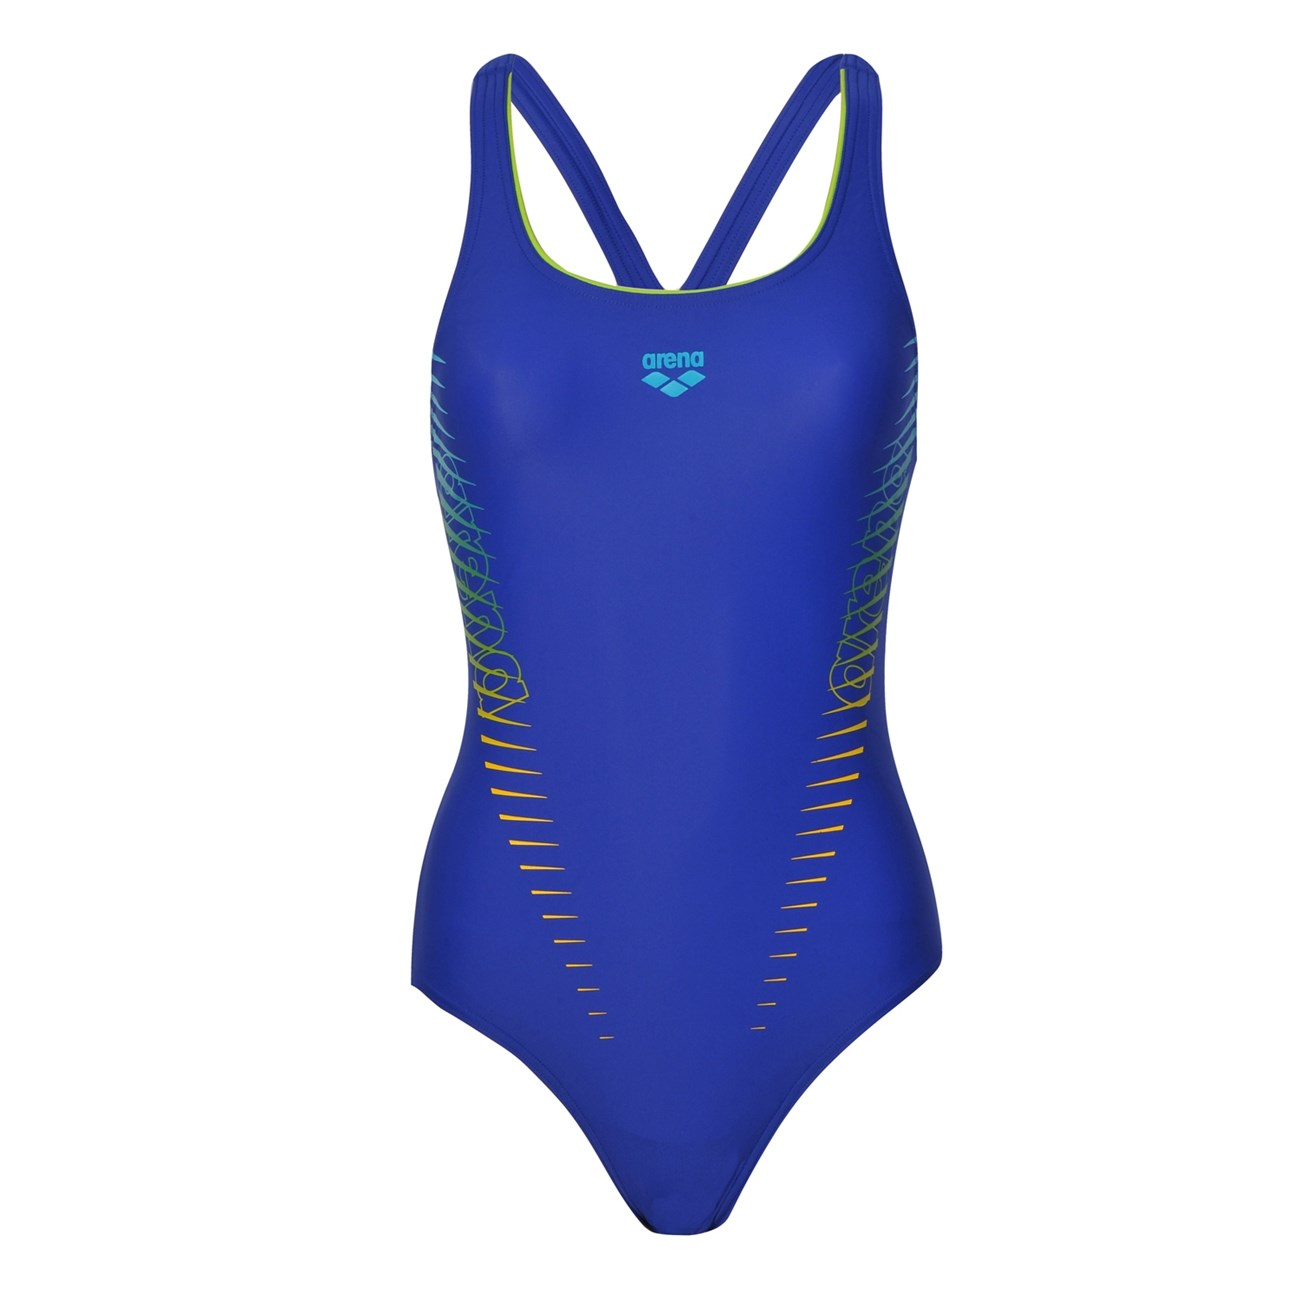 0ebf81eb638 ARENA W URBAN ONE PIECE < Γυναικεία Μαγιό | INTERSPORT